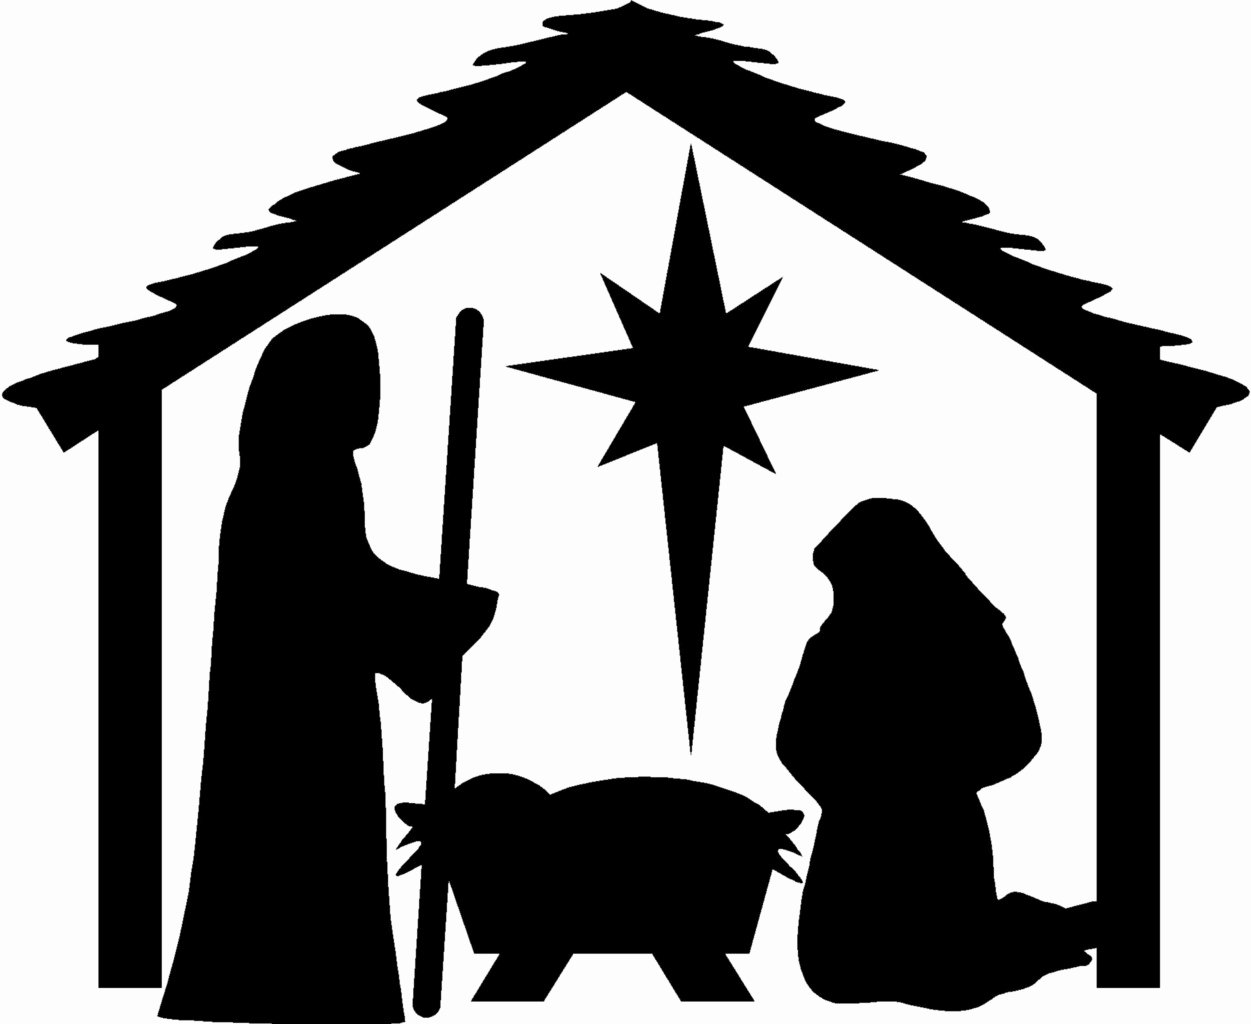 Nativity Scene Silhouette Printable Awesome Nativity Christmas Wall Stickers Vinyl Decal Decor Art